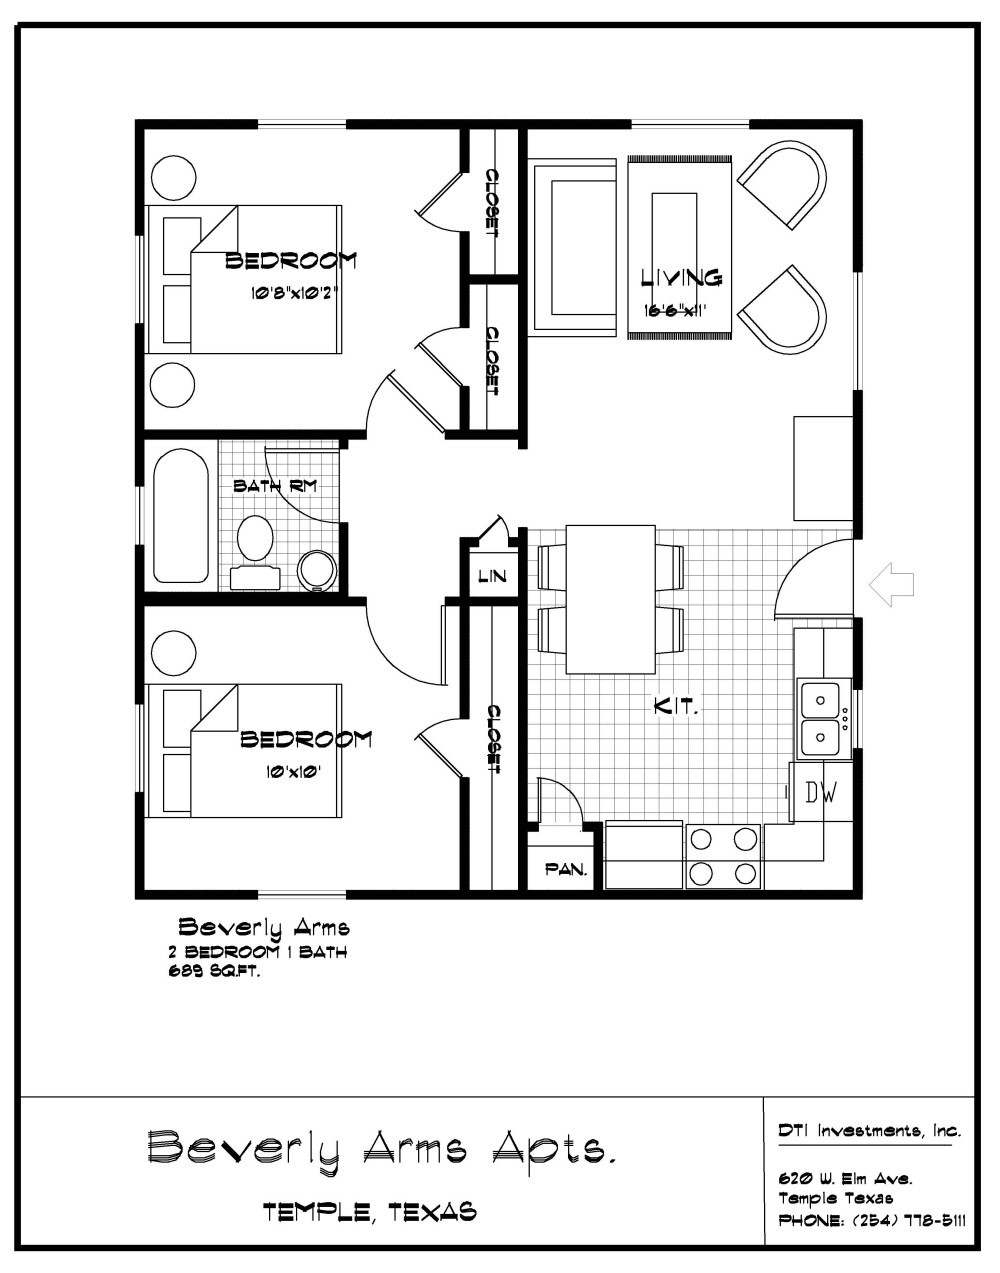 2 Bedroom, 1 Bath, 689 Sf